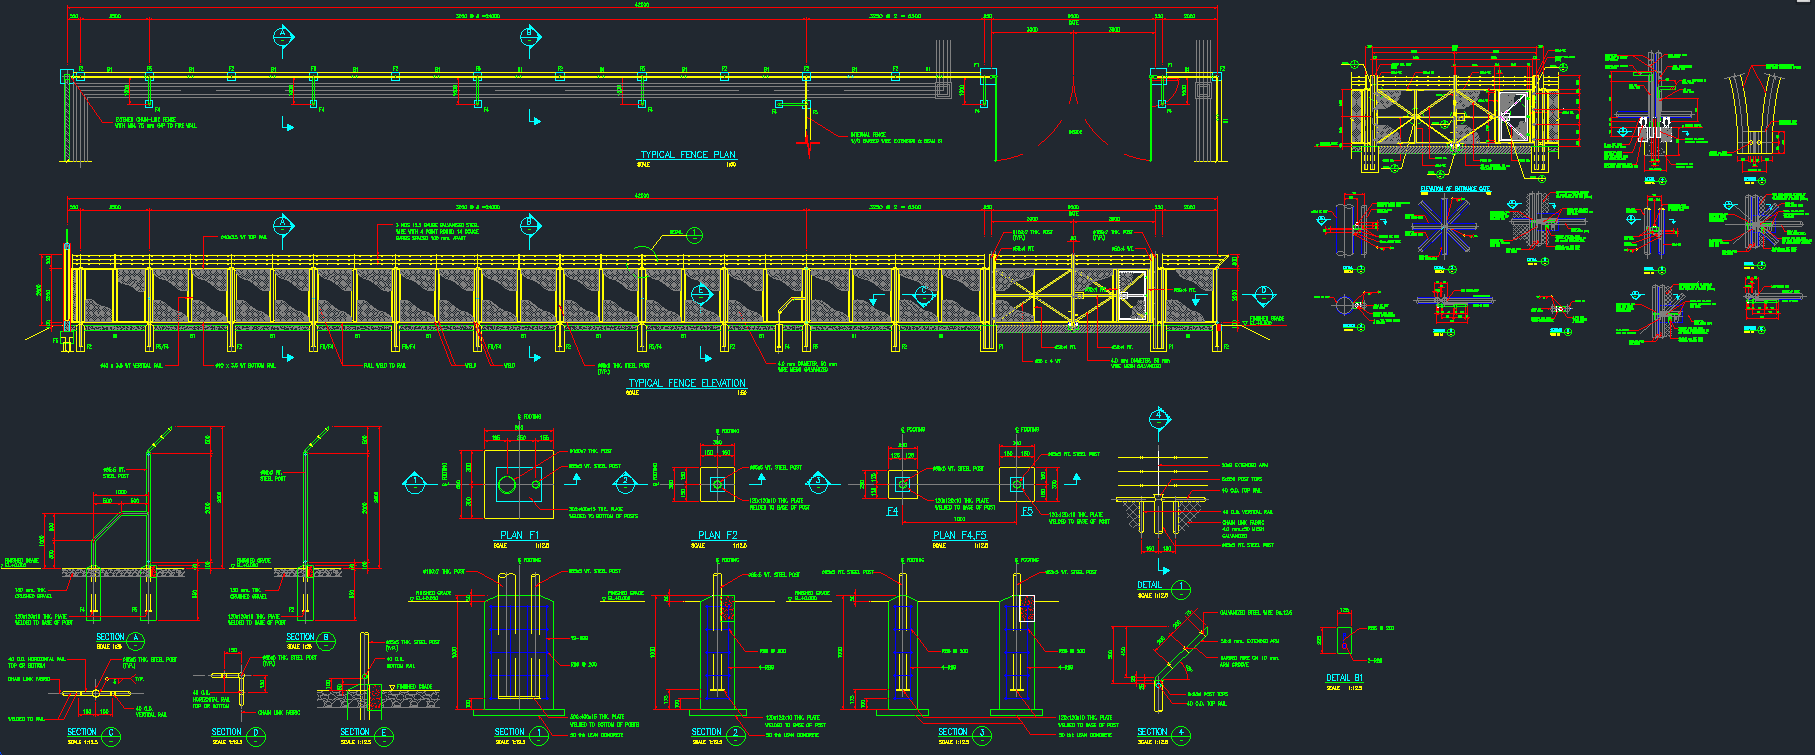 Piping Diagram Symbols Autocad Wiring Diagrams Data Base Block Valve Pid Symbol On Electrical Schematic Switch Free Cad And Drawing Rh Linecad Com For